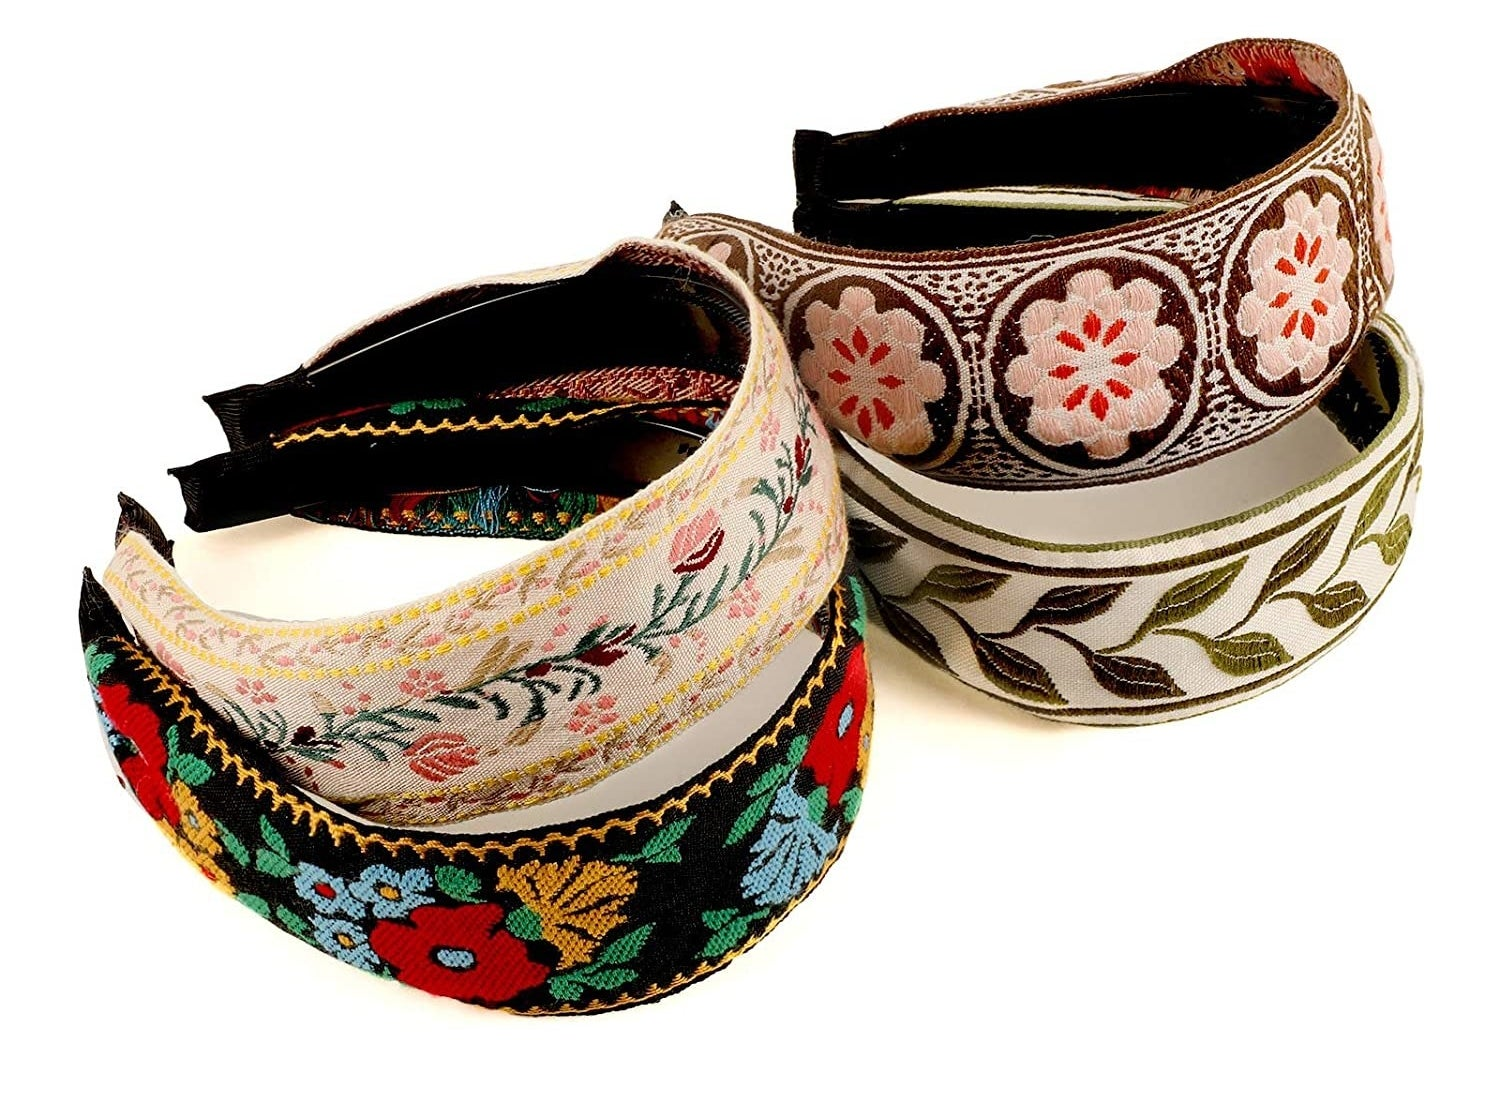 The set of four headbands stacked on one another